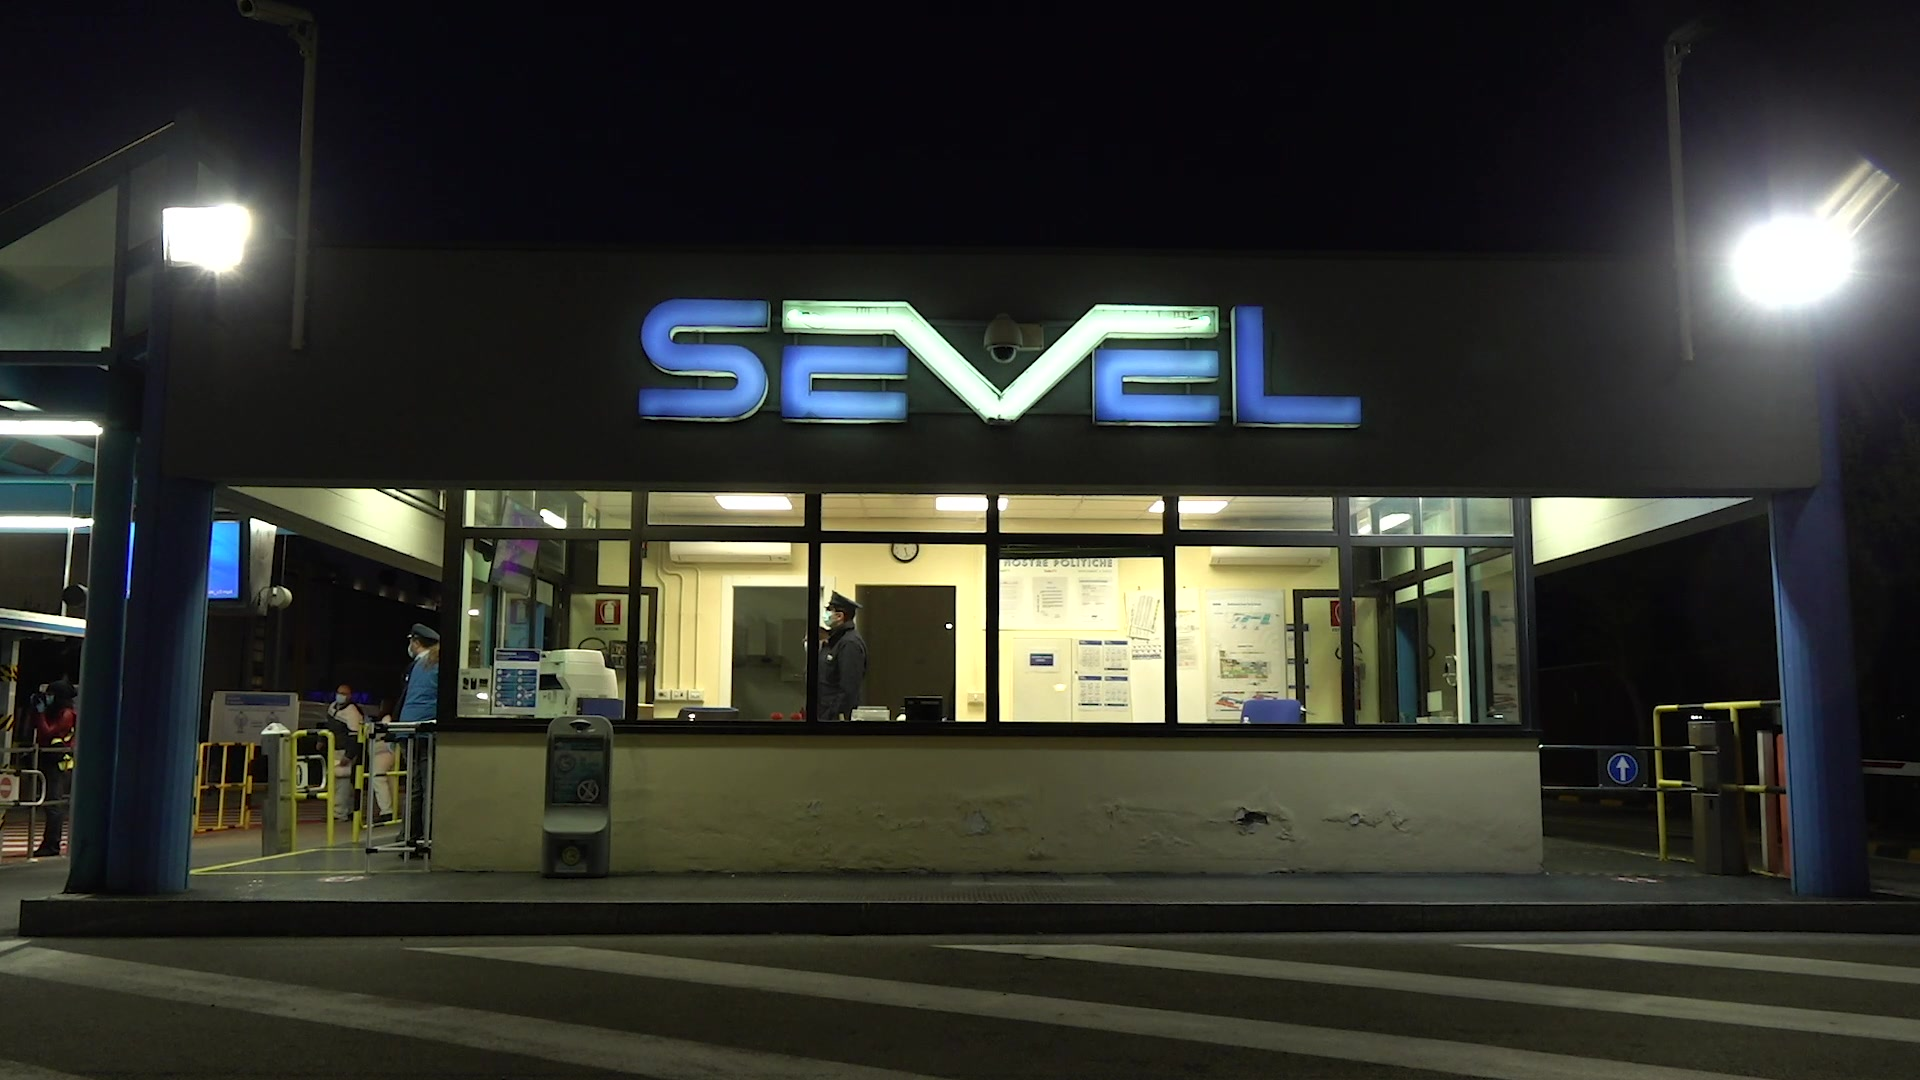 Sevel - Body temperature monitoring cameras